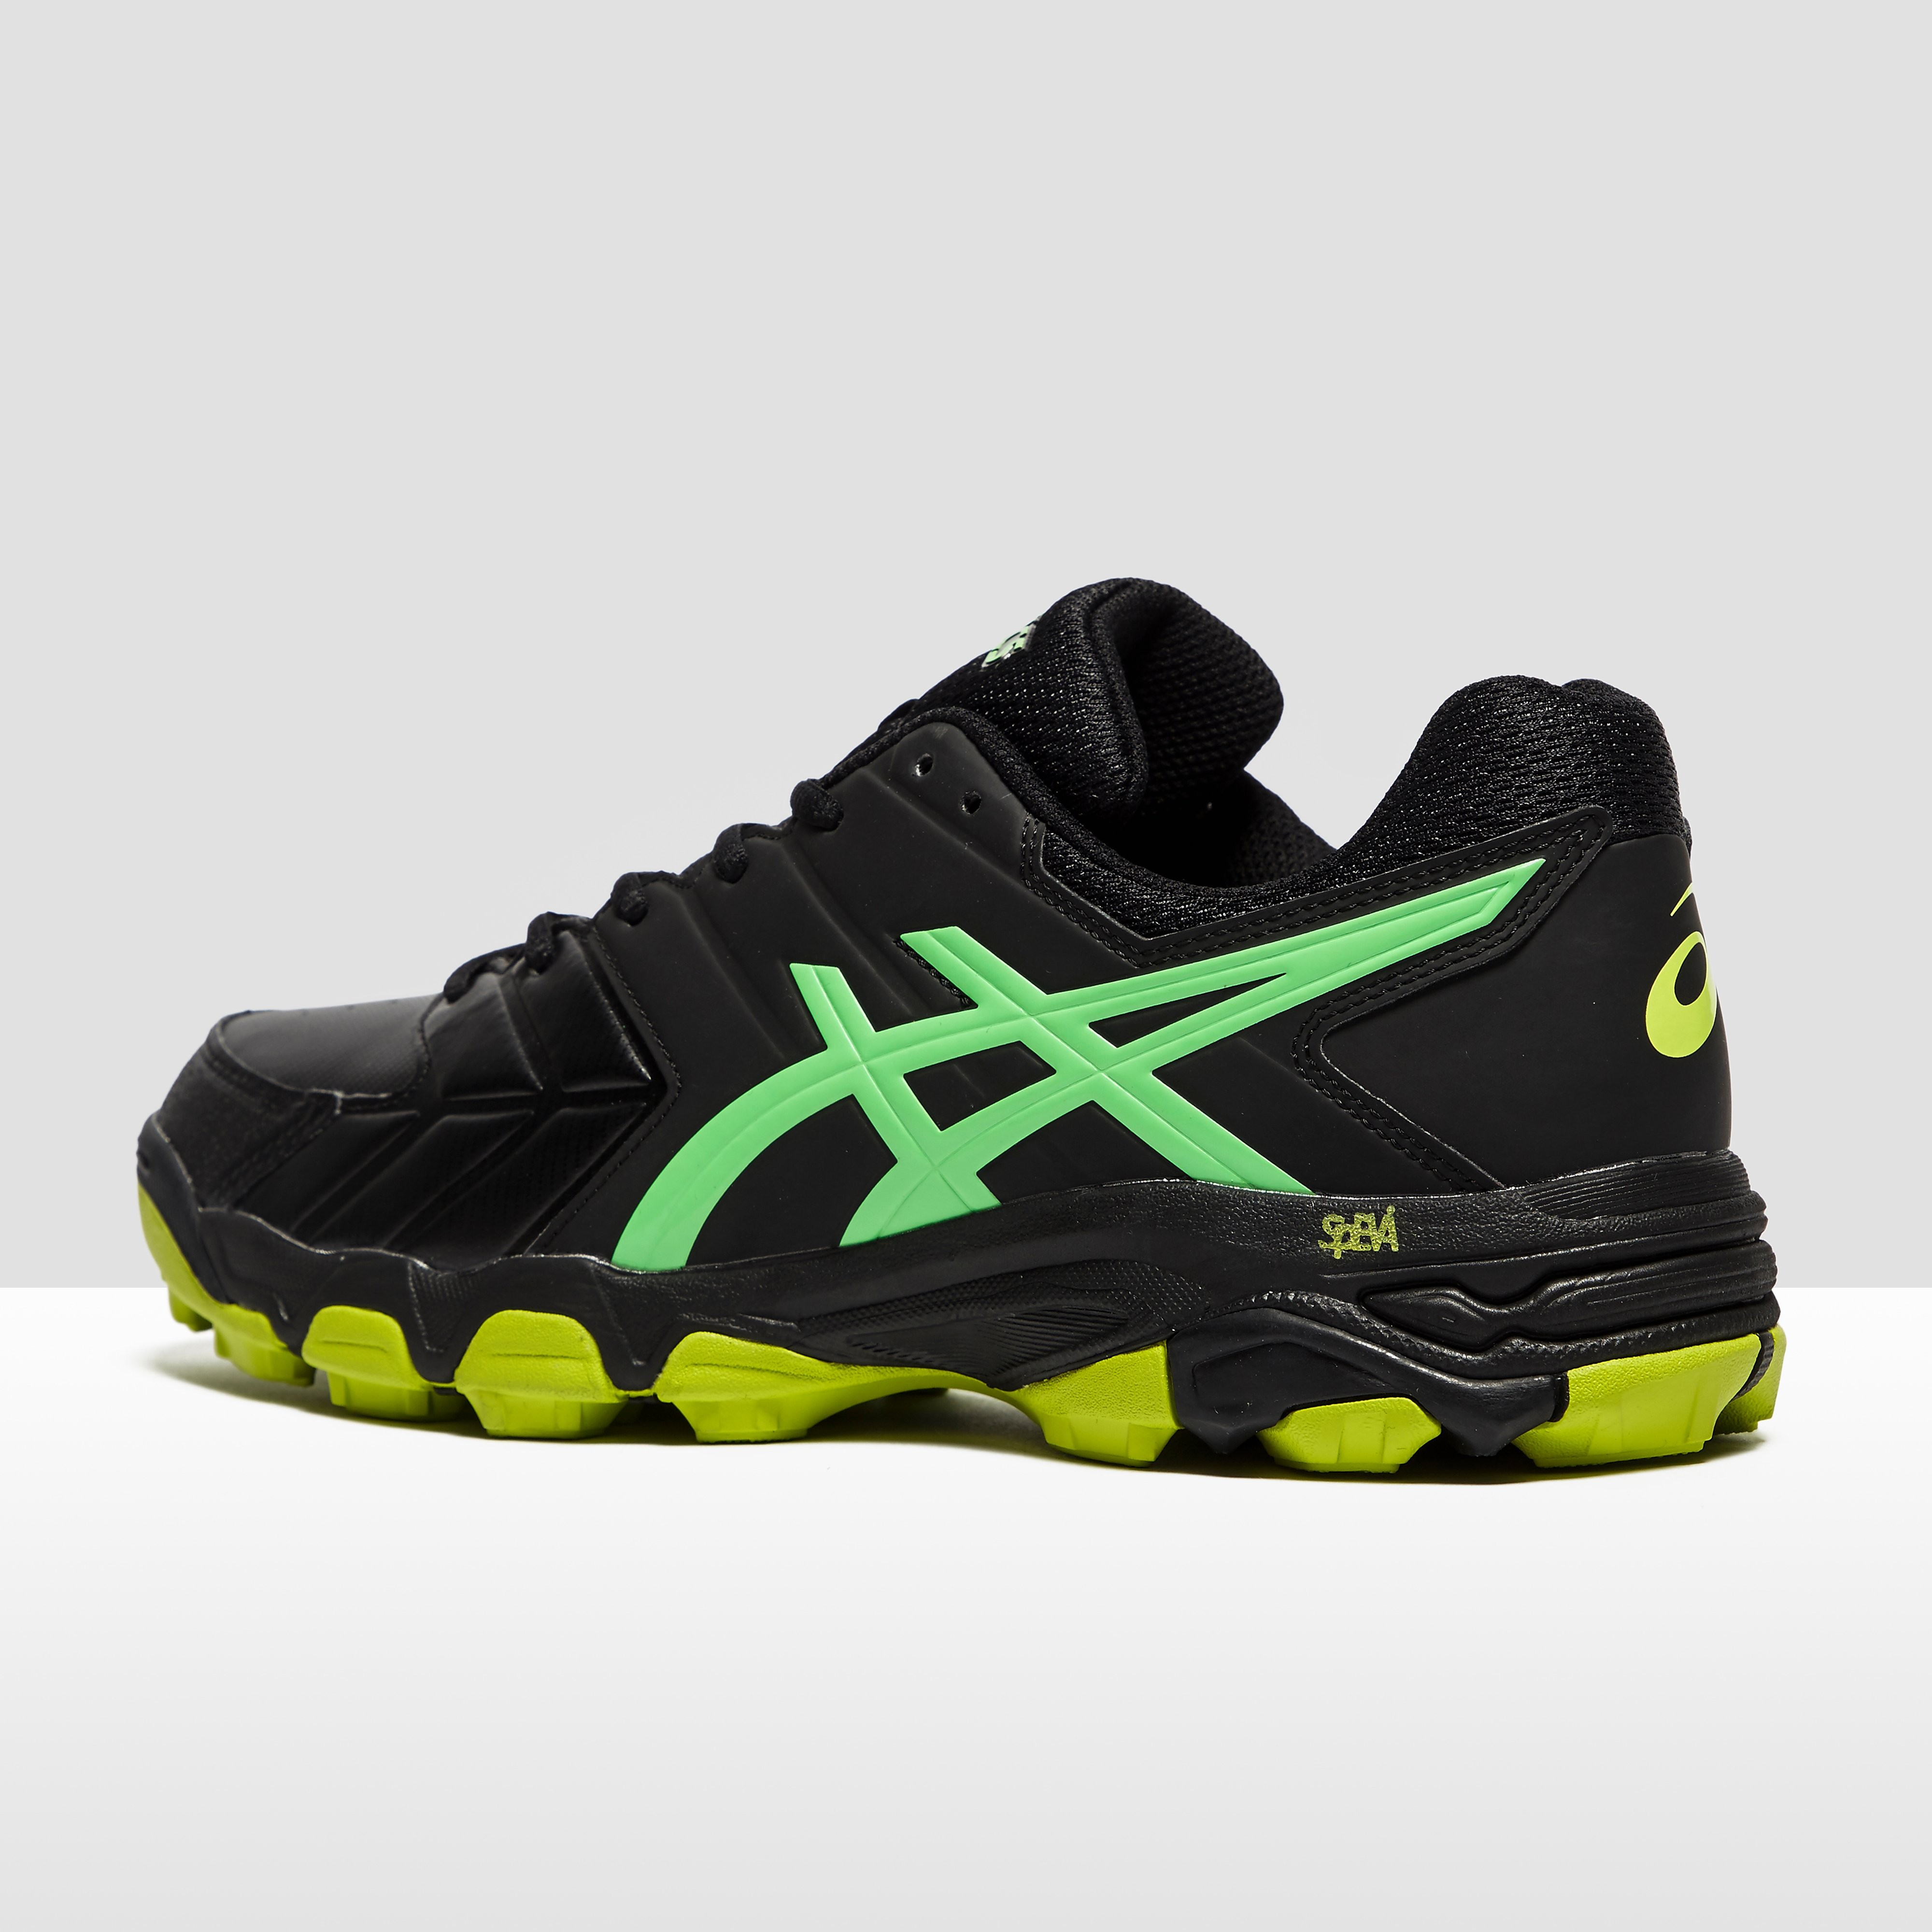 ASICS GEL-Blackheath 6 Men's Hockey Shoes